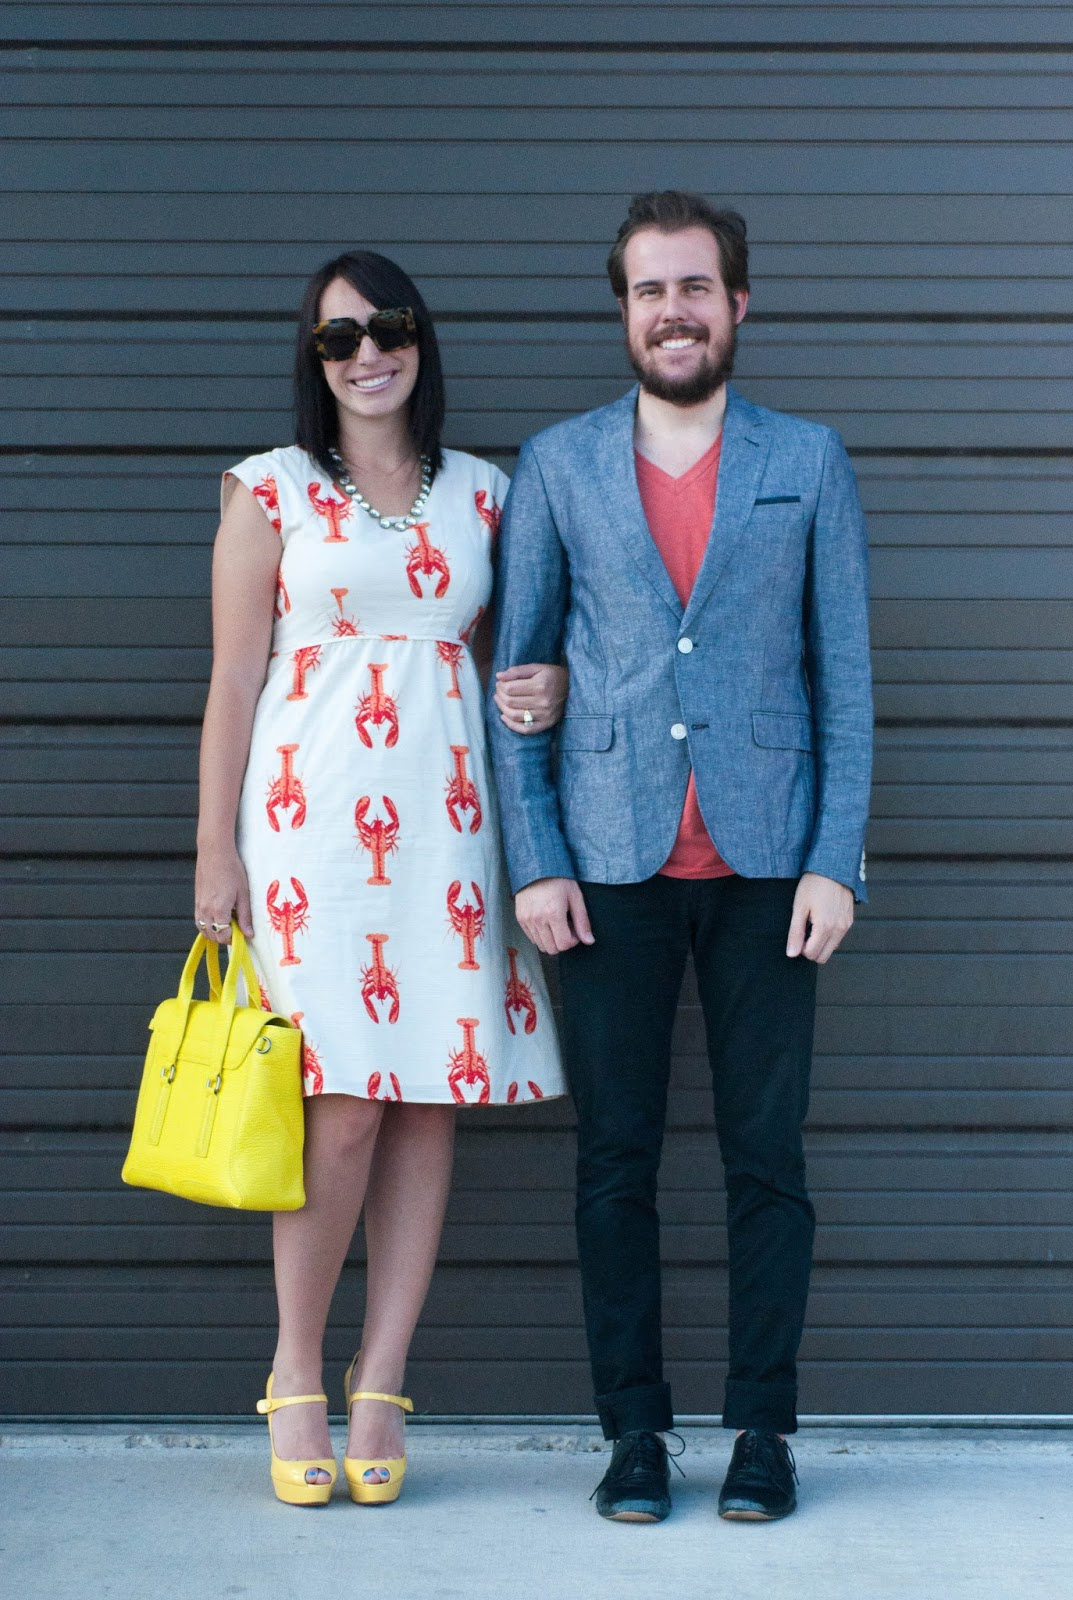 ootd, style blog, couples style blog, lobster dress, christian louboutin bana heels, 3.1 phillip lim pashli medium satchel, jcrew necklace